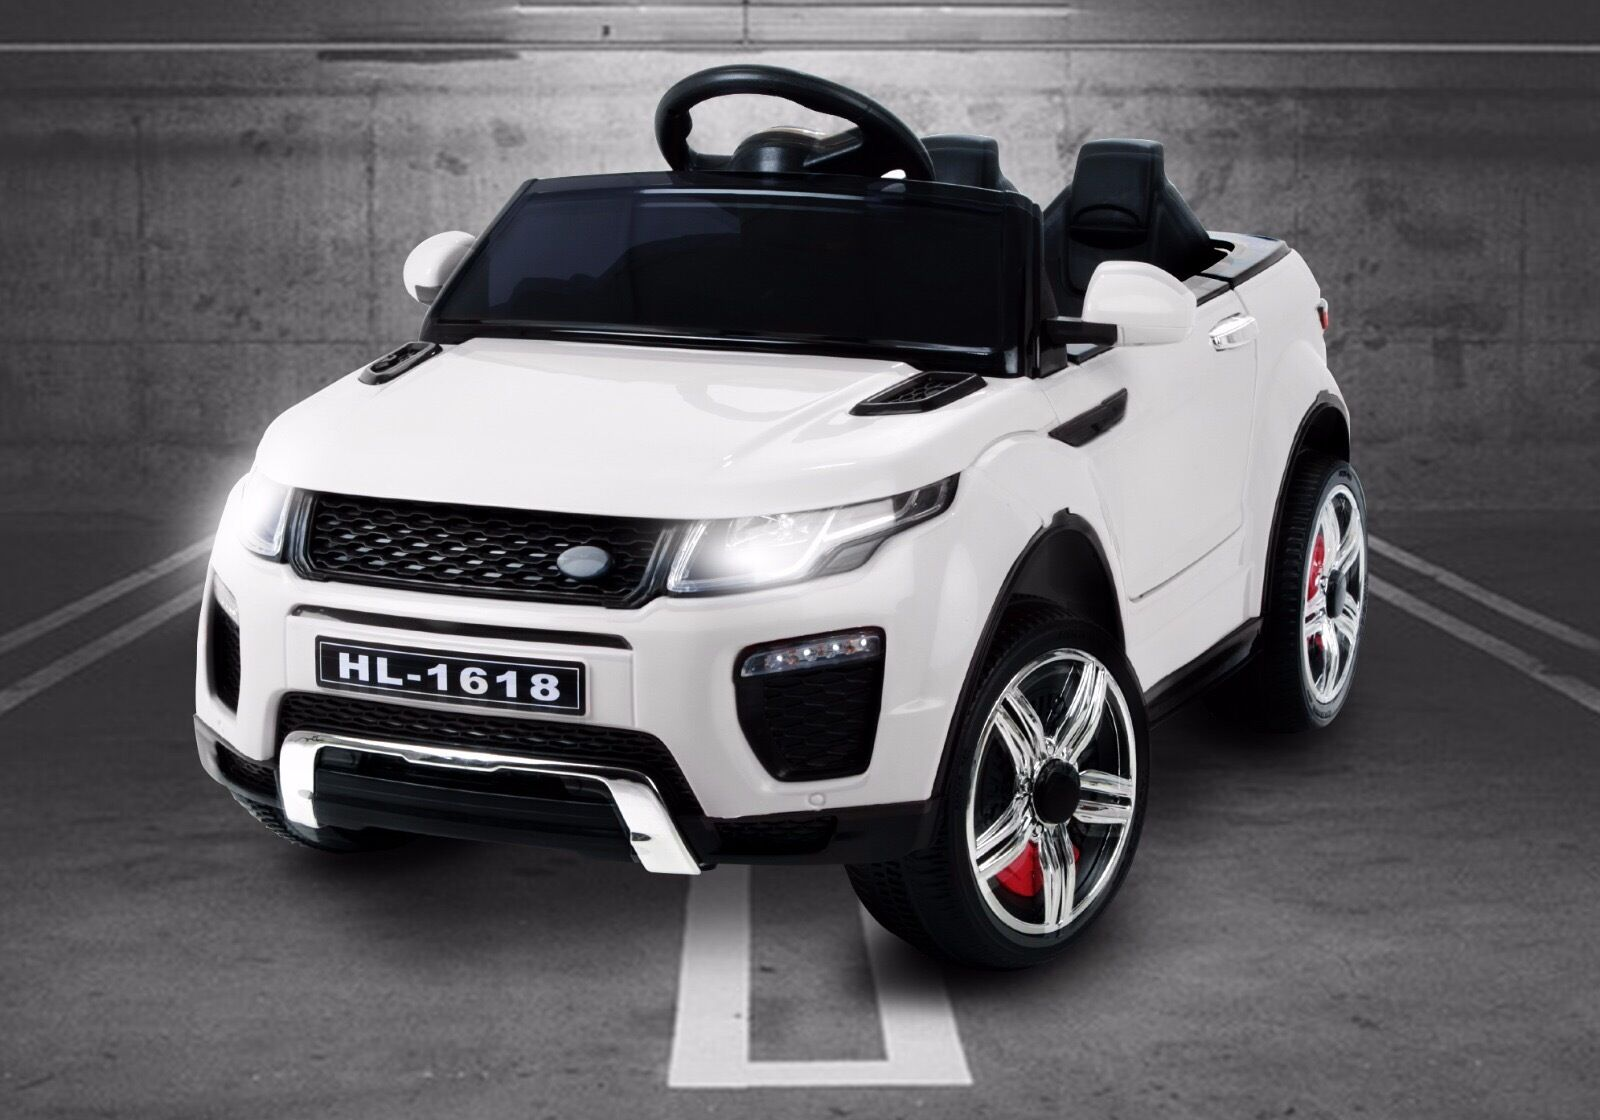 New Kids Range Rover Evoque Style Battery Ride On Car Electric